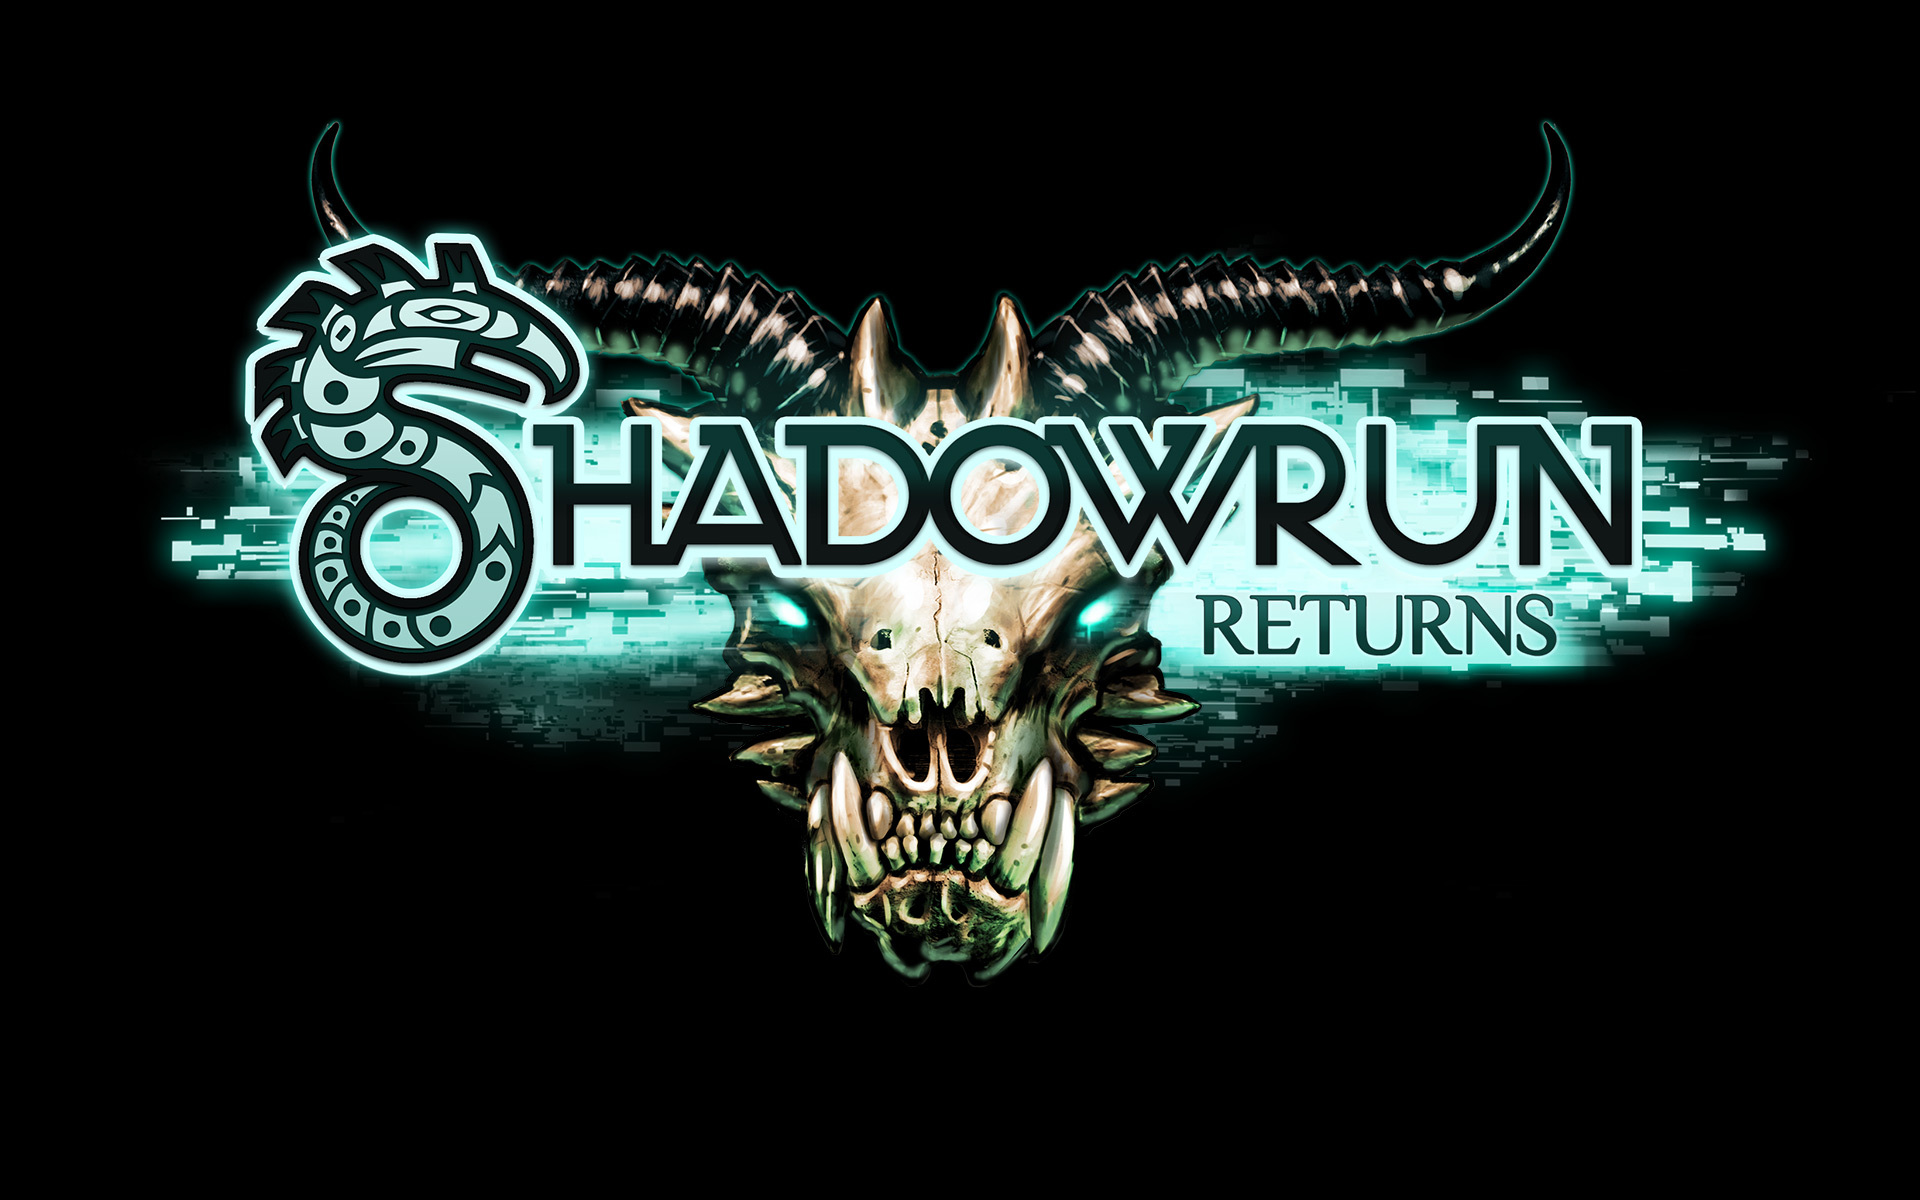 Shadowrun Returns Wallpapers Images Photos Pictures Backgrounds